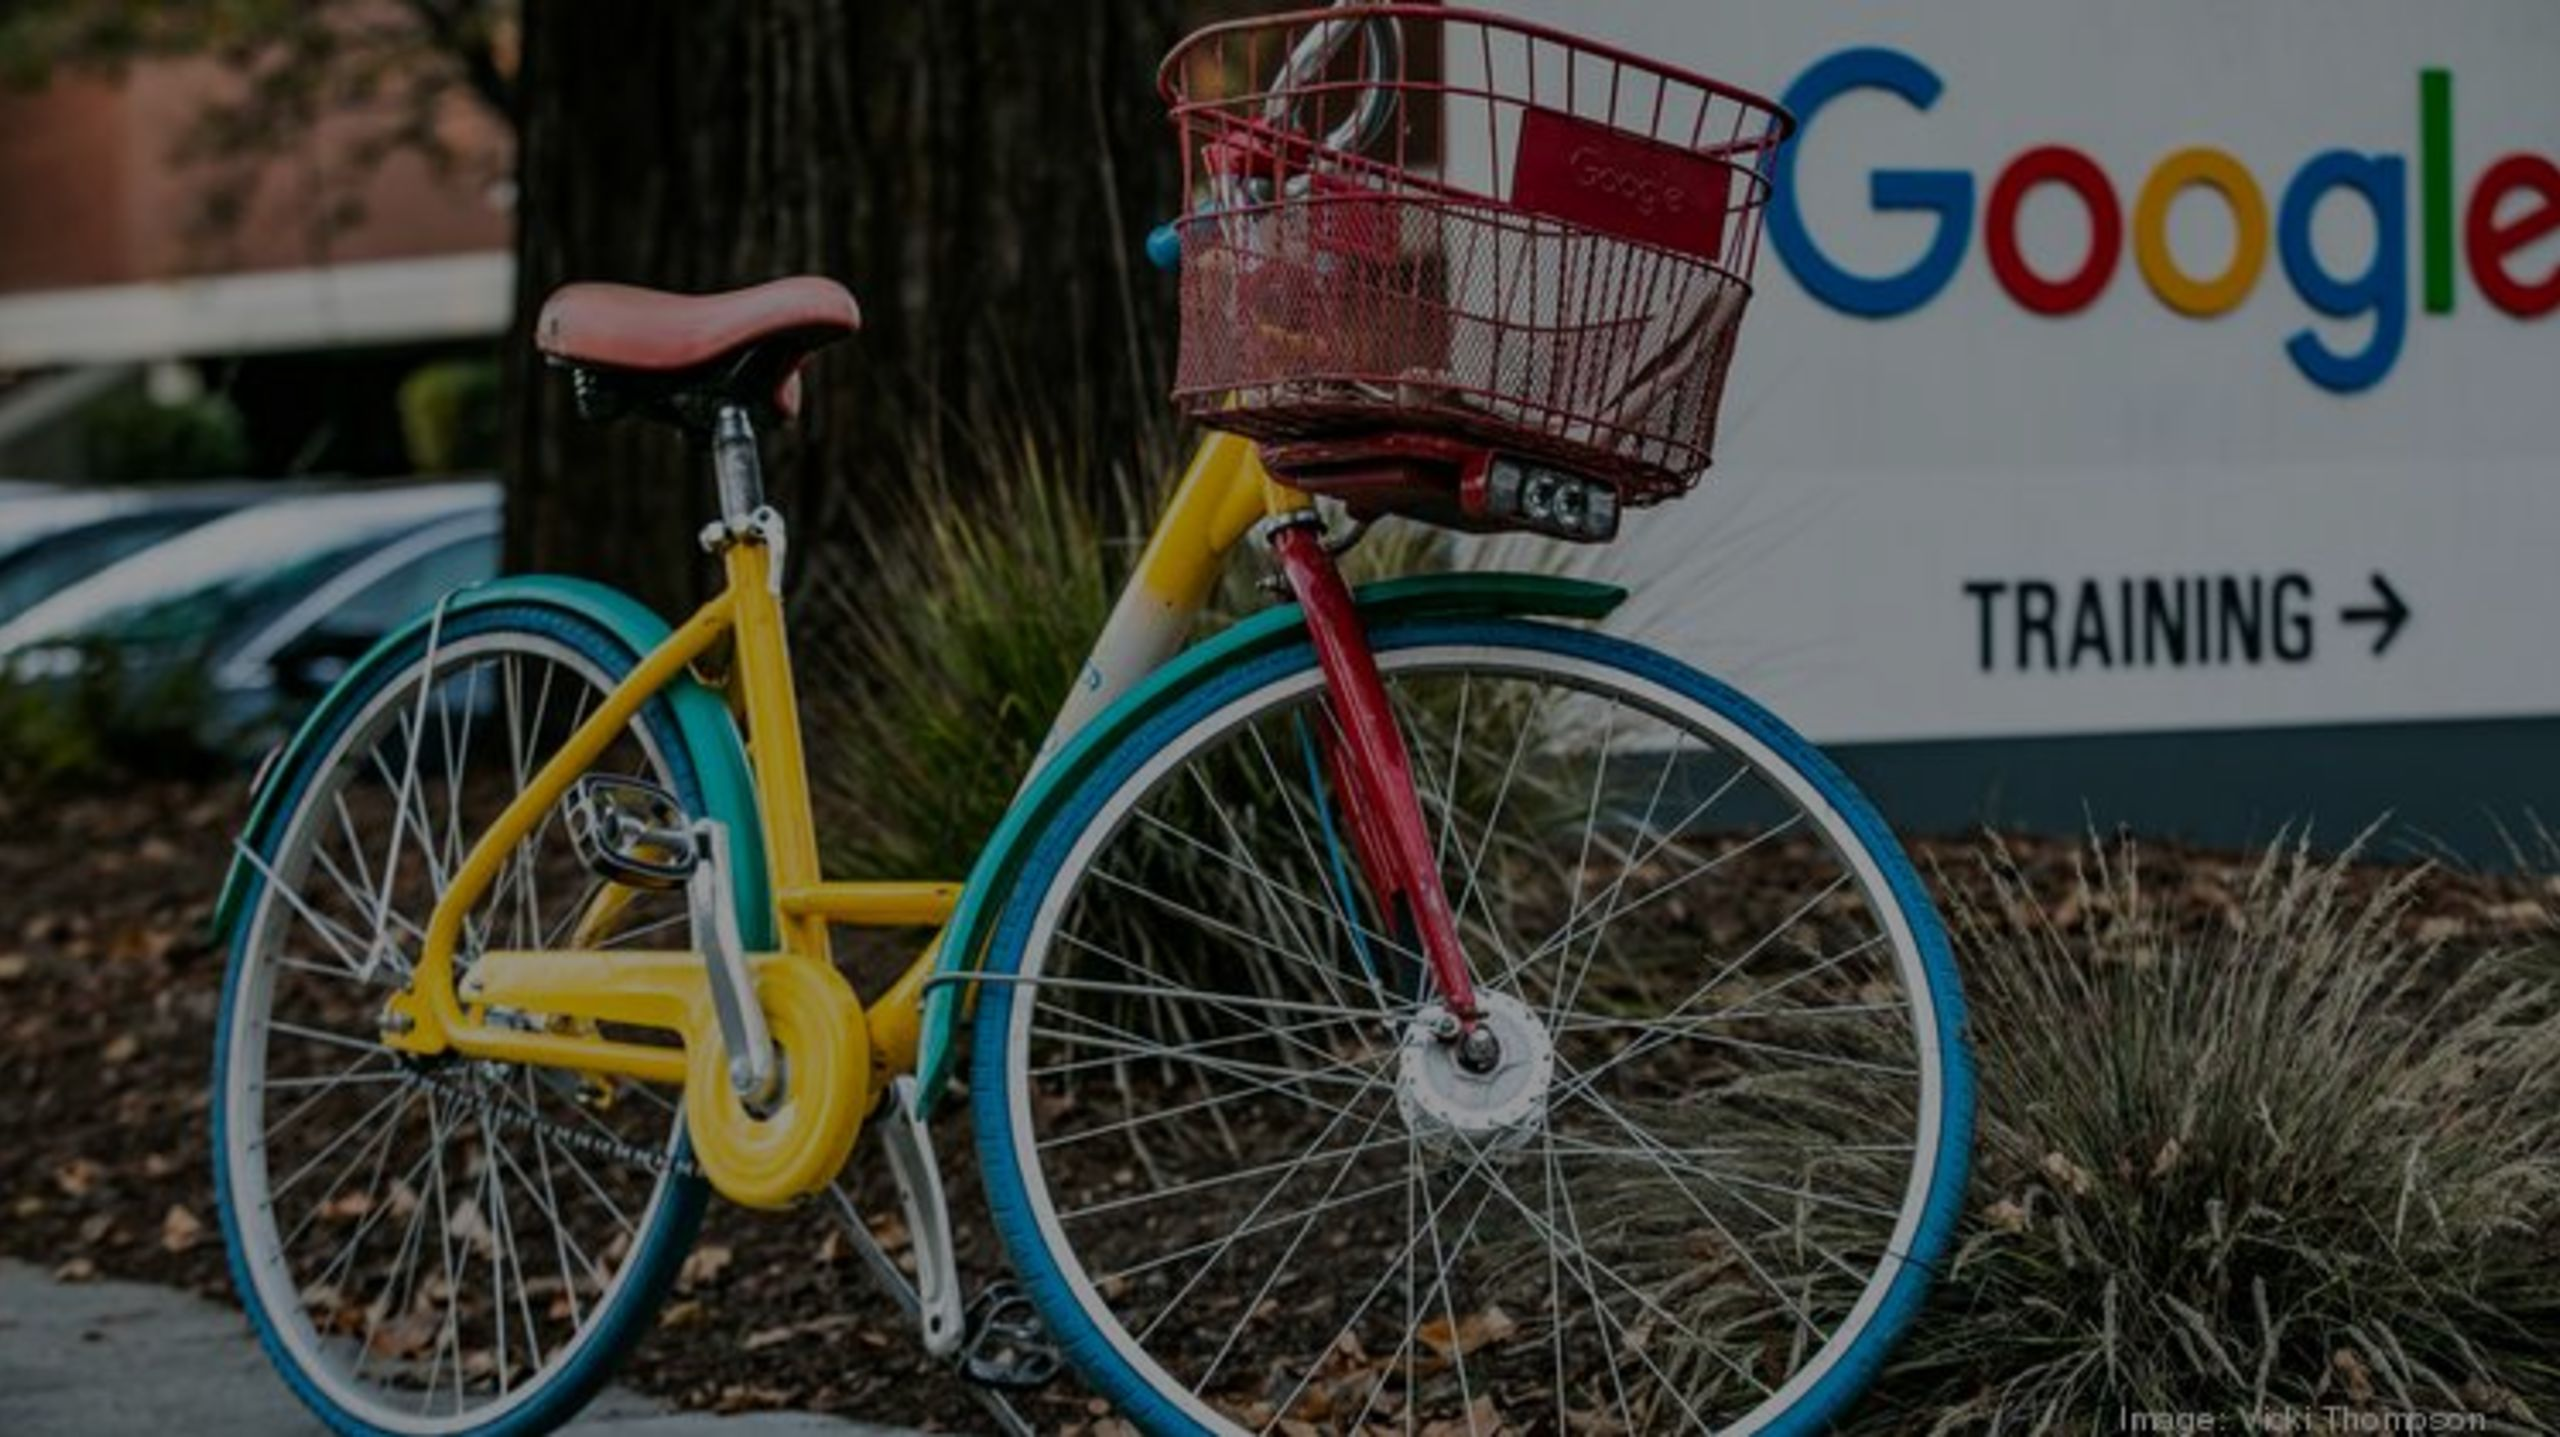 Google gets into the affordable housing business